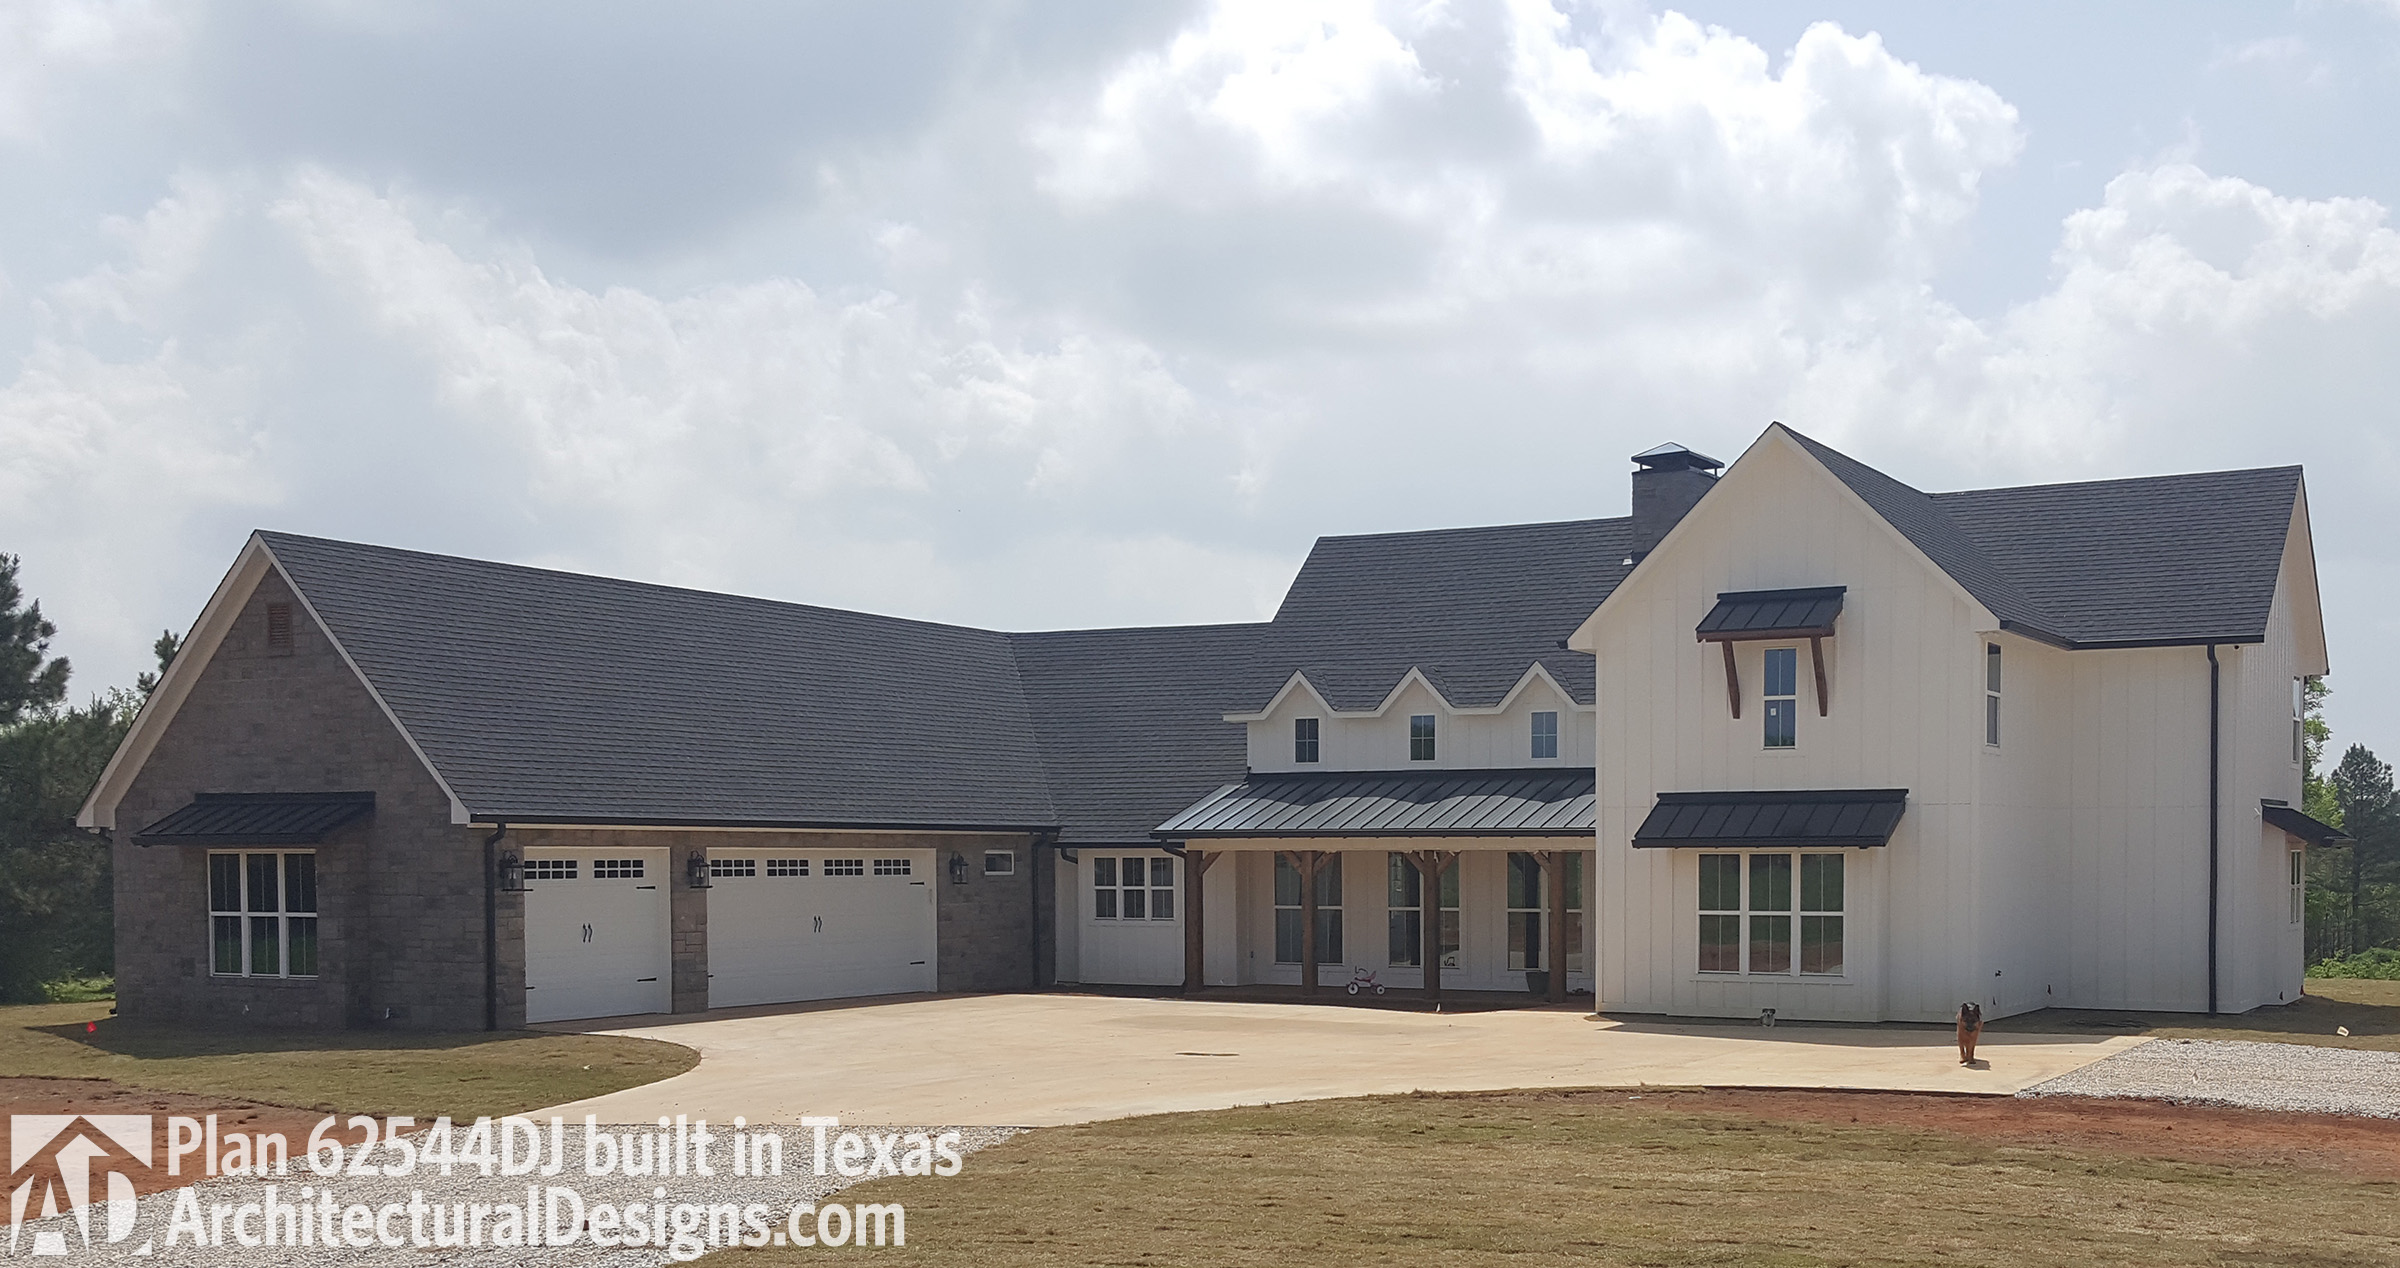 house plan 62544dj built in texas